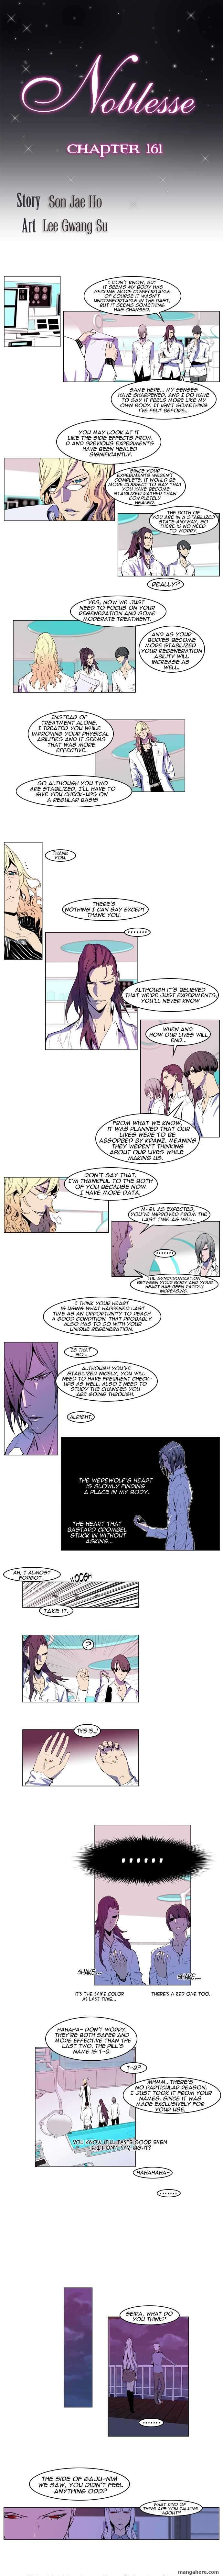 Noblesse 161 Page 2